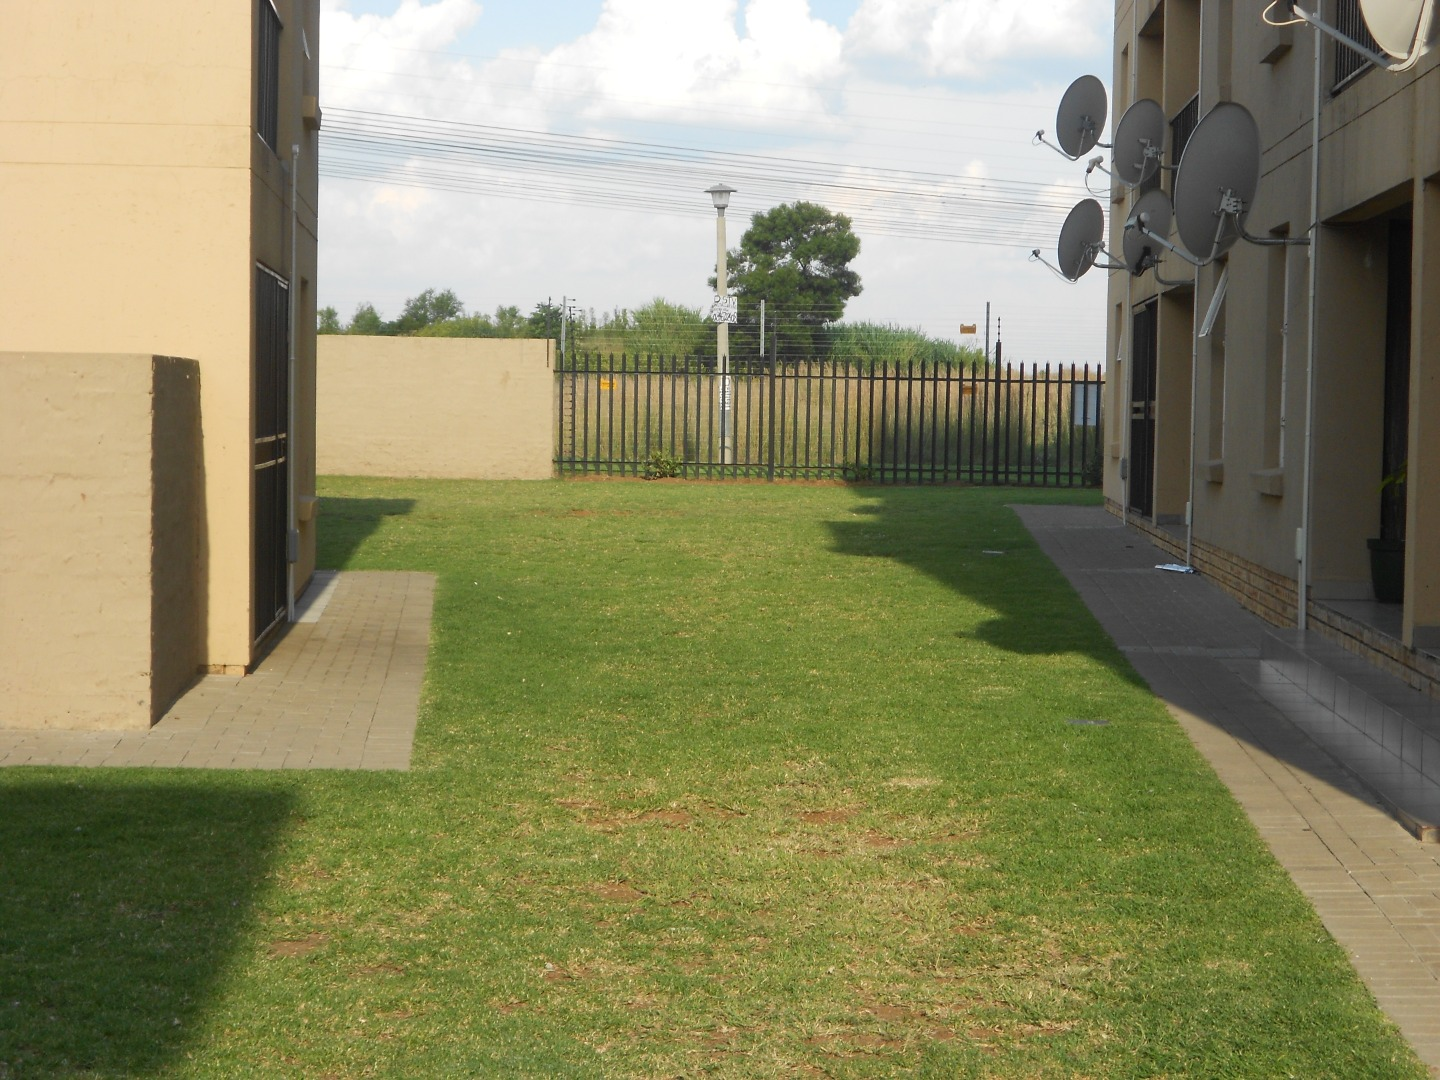 3 Bedroom Townhouse For Sale in Albertsdal